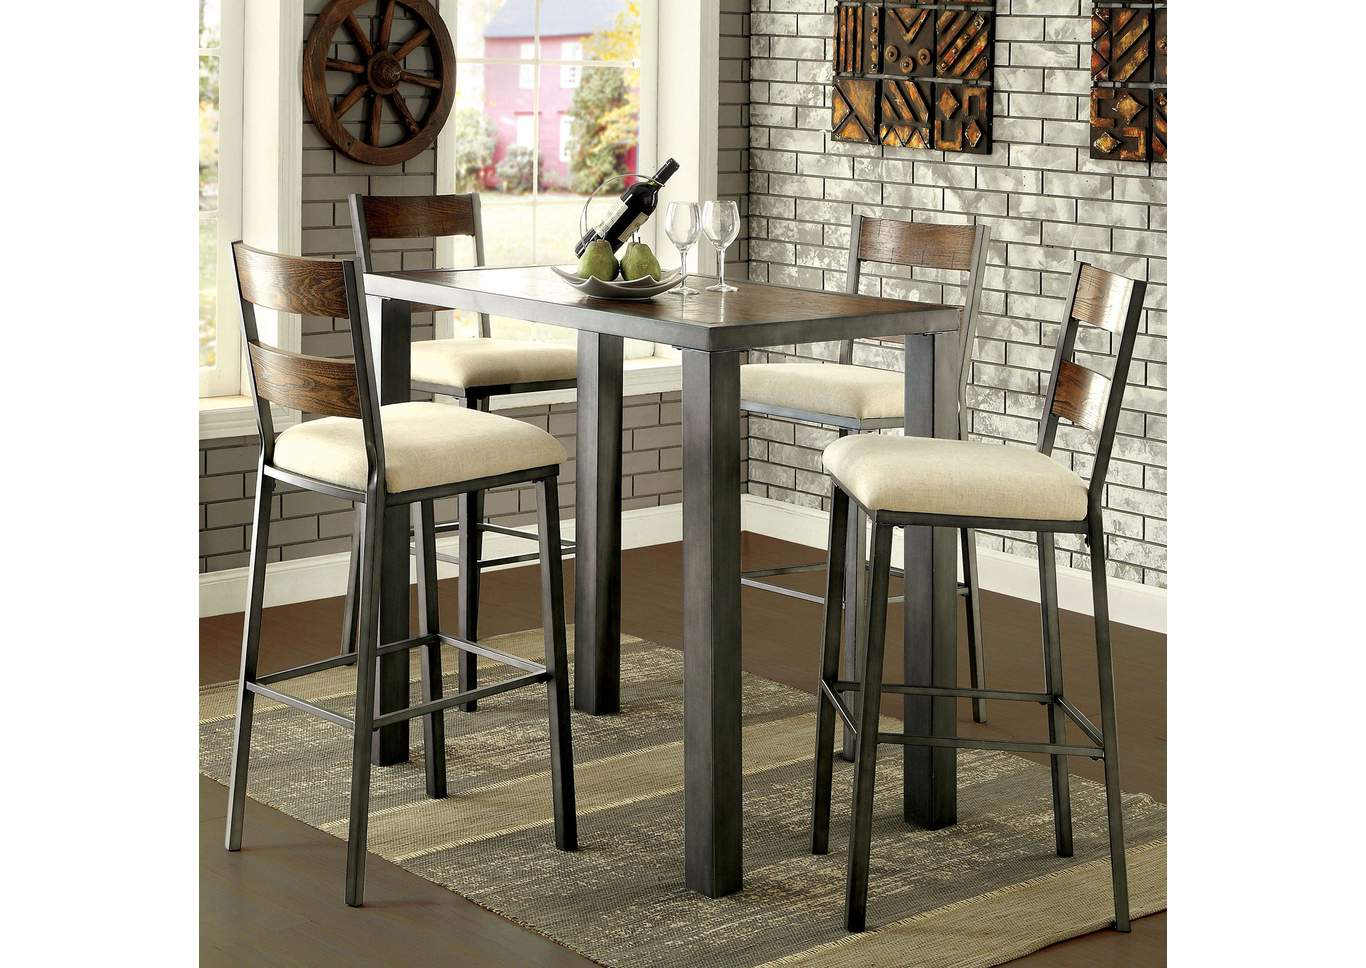 Jazlyn II Weathered Oak Pub Height Bar Table,Furniture of America